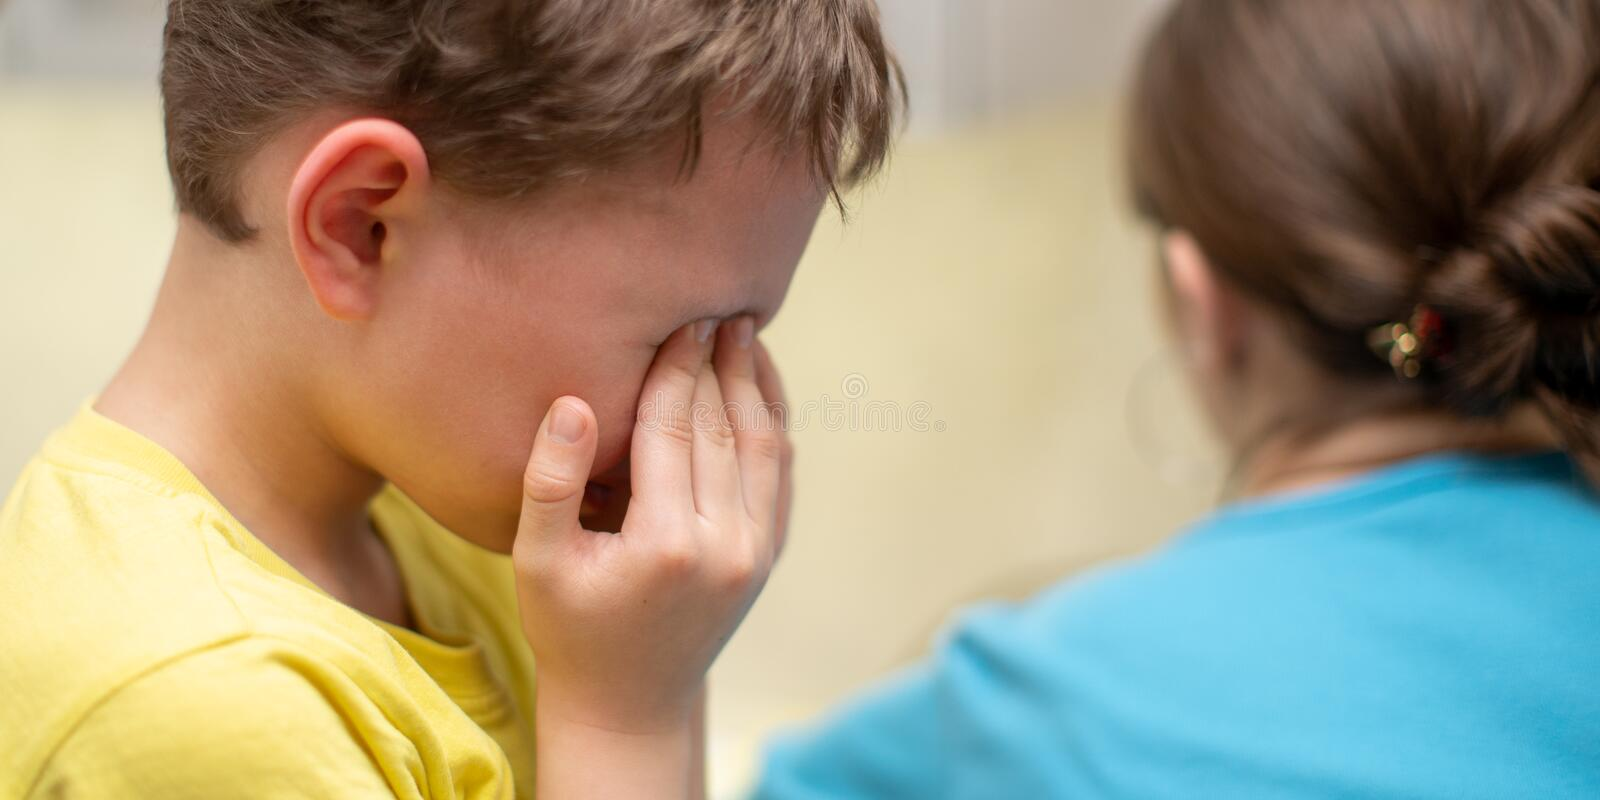 Portrait of a crying boy on a white background stock photo